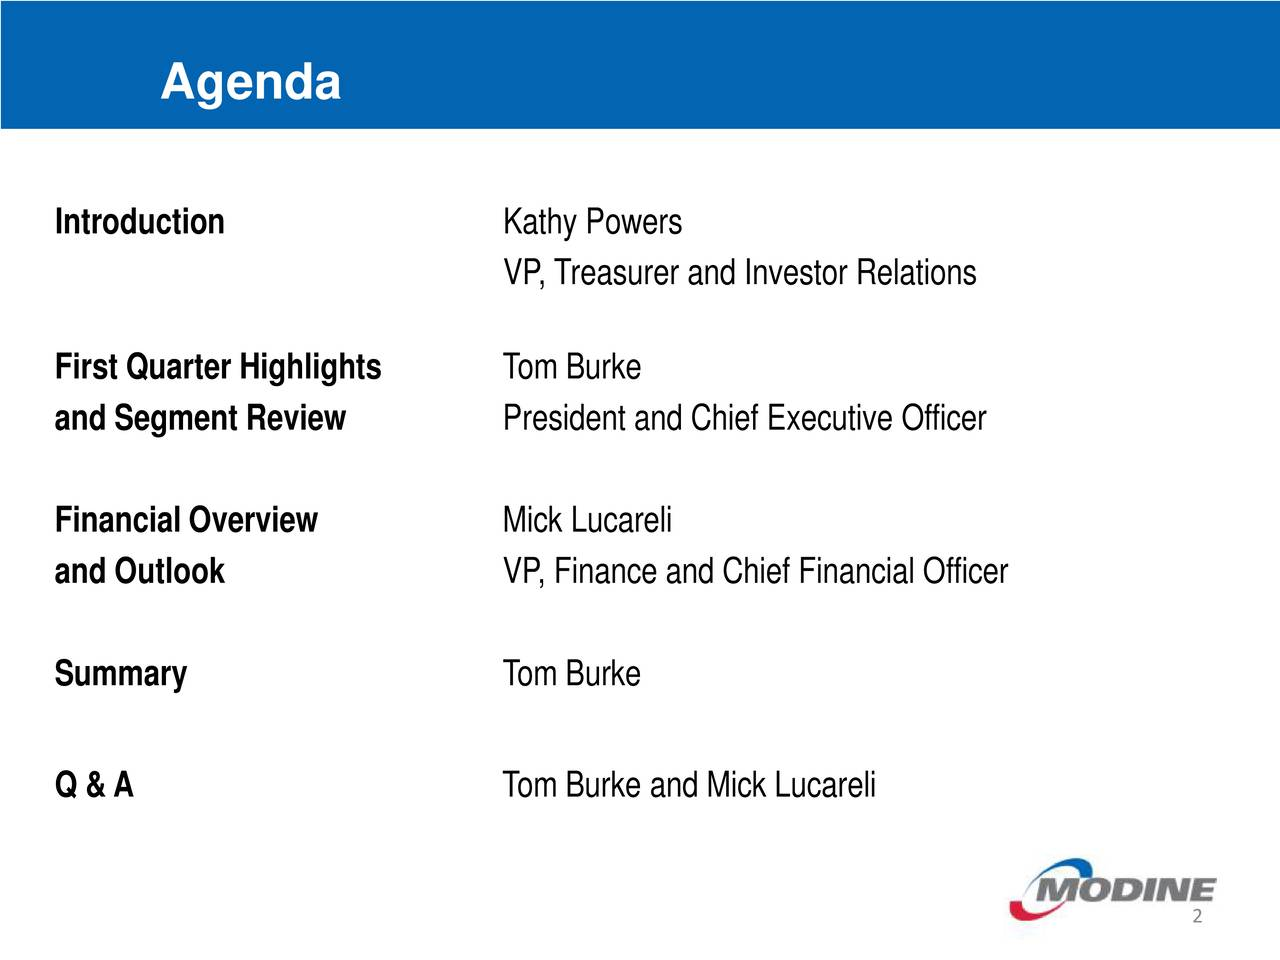 Introduction Kathy Powers VP, Treasurer andInvestor Relations First Quarter Highlights Tom Burke and Segment Review President and Chief Executive Officer Financial Overview Mick Lucareli and Outlook VP, Finance and Chief Financial Officer Summary TomBurke Q &A Tom Burke and Mick Lucareli 2